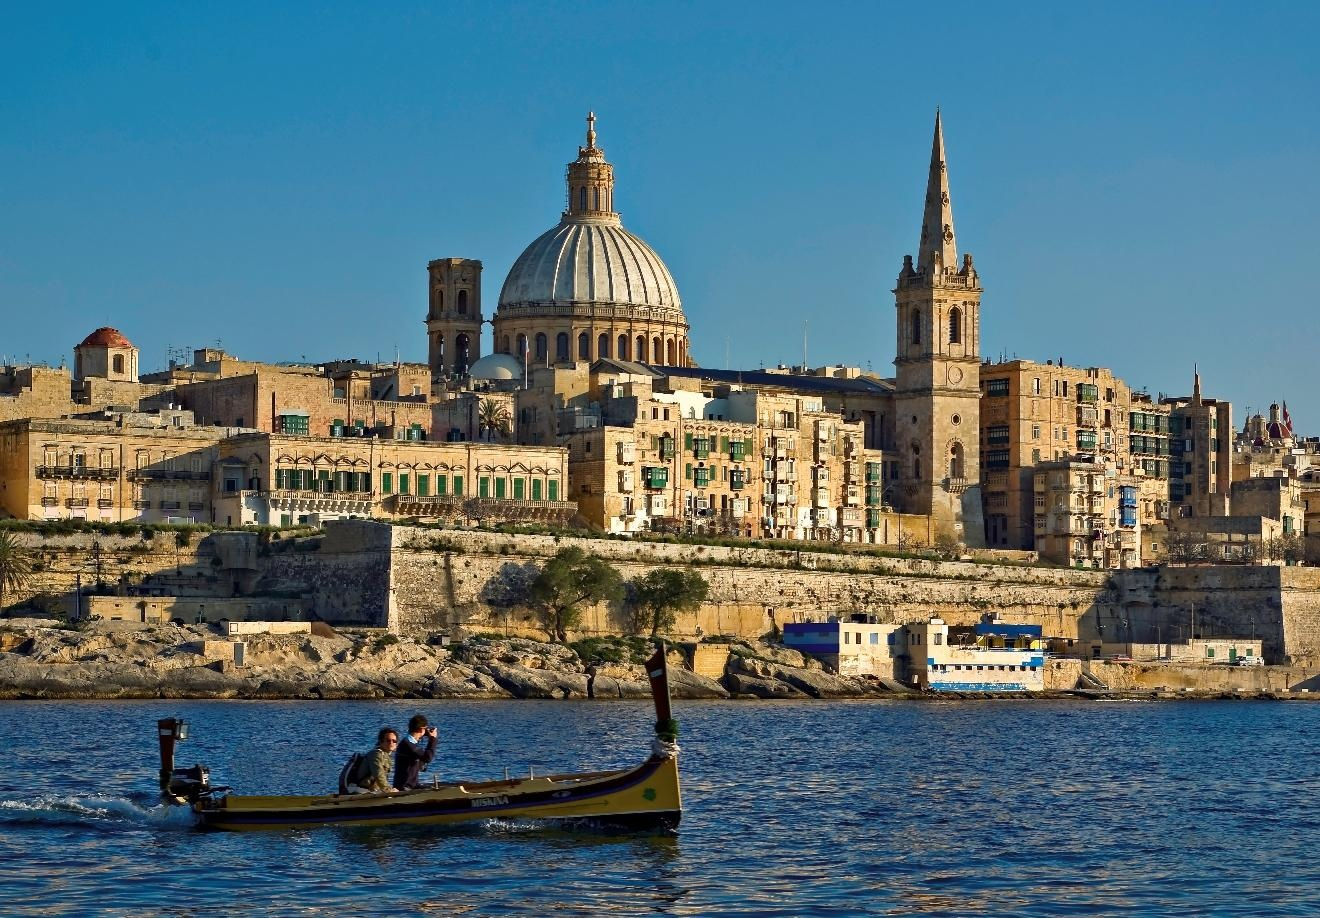 Malta's harbour is a dramatic entry point to the island nation.